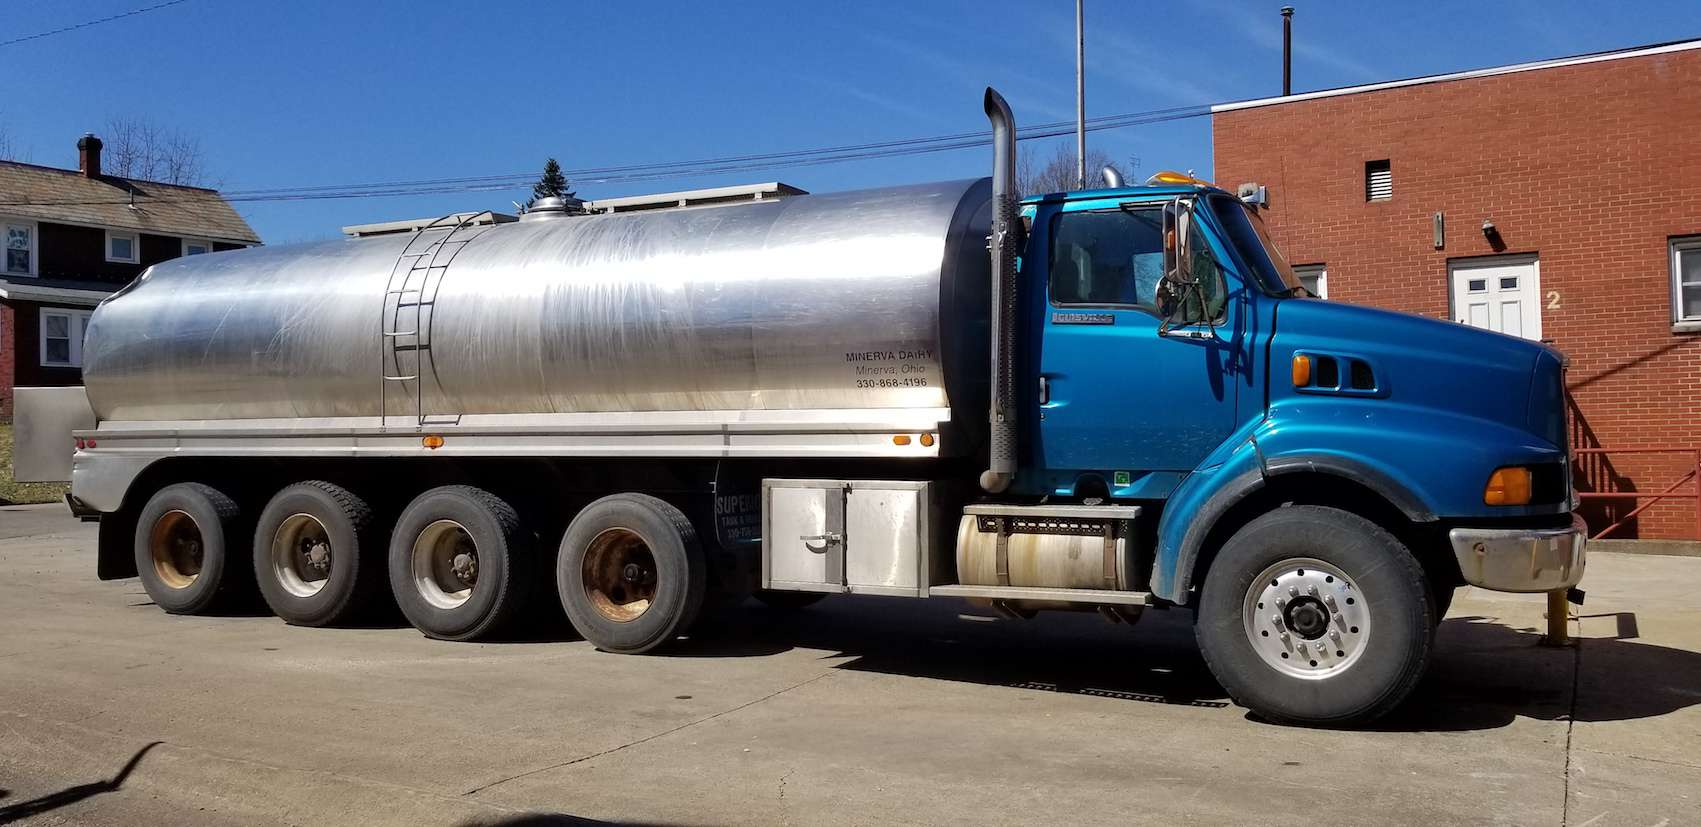 1998 Ford 4-Axle Tanker Trunk, VIN 1FDZS96M9WVA20223, with CAT C12, Diesel Engine, 8 – Speed Transmission, Air Brakes, 155,216 Metered Miles, with 1990 Walker 5,500 Gallon S/S Tanker, Model BPC-158, (Blue)